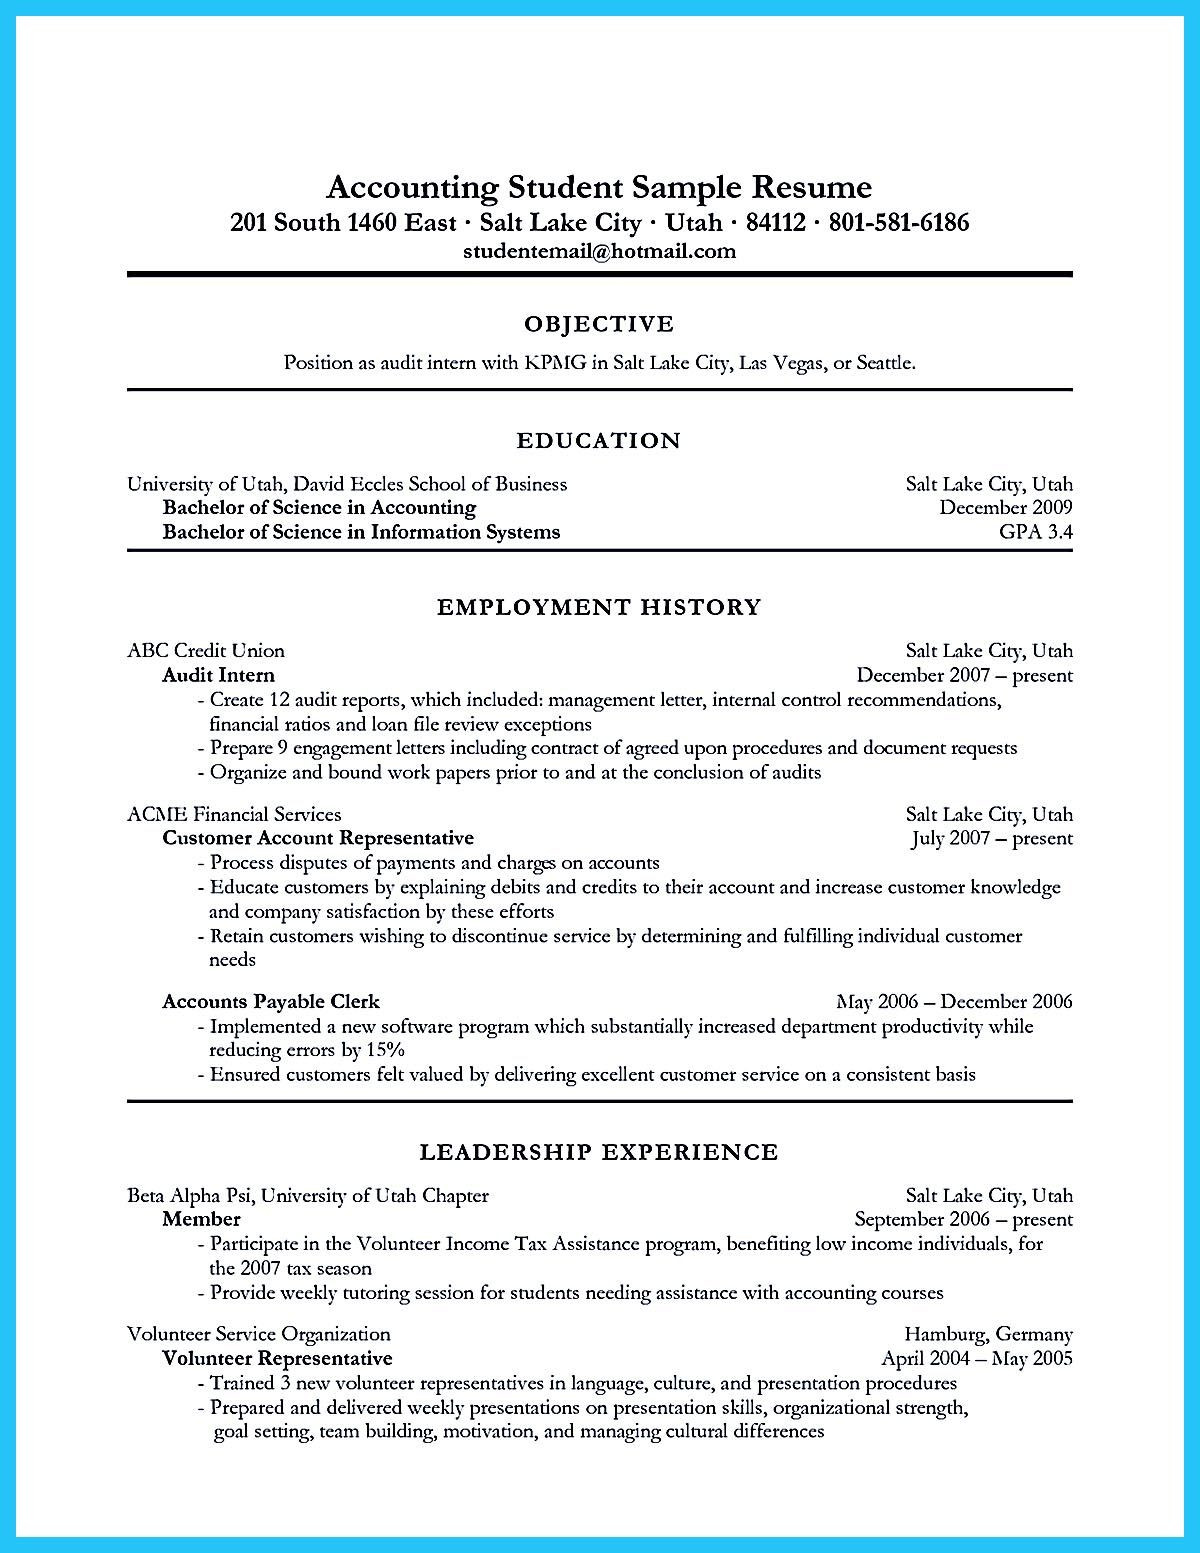 Sample Accounting Resume with No Experience Awesome Accounting Student Resume with No Experience Resume …